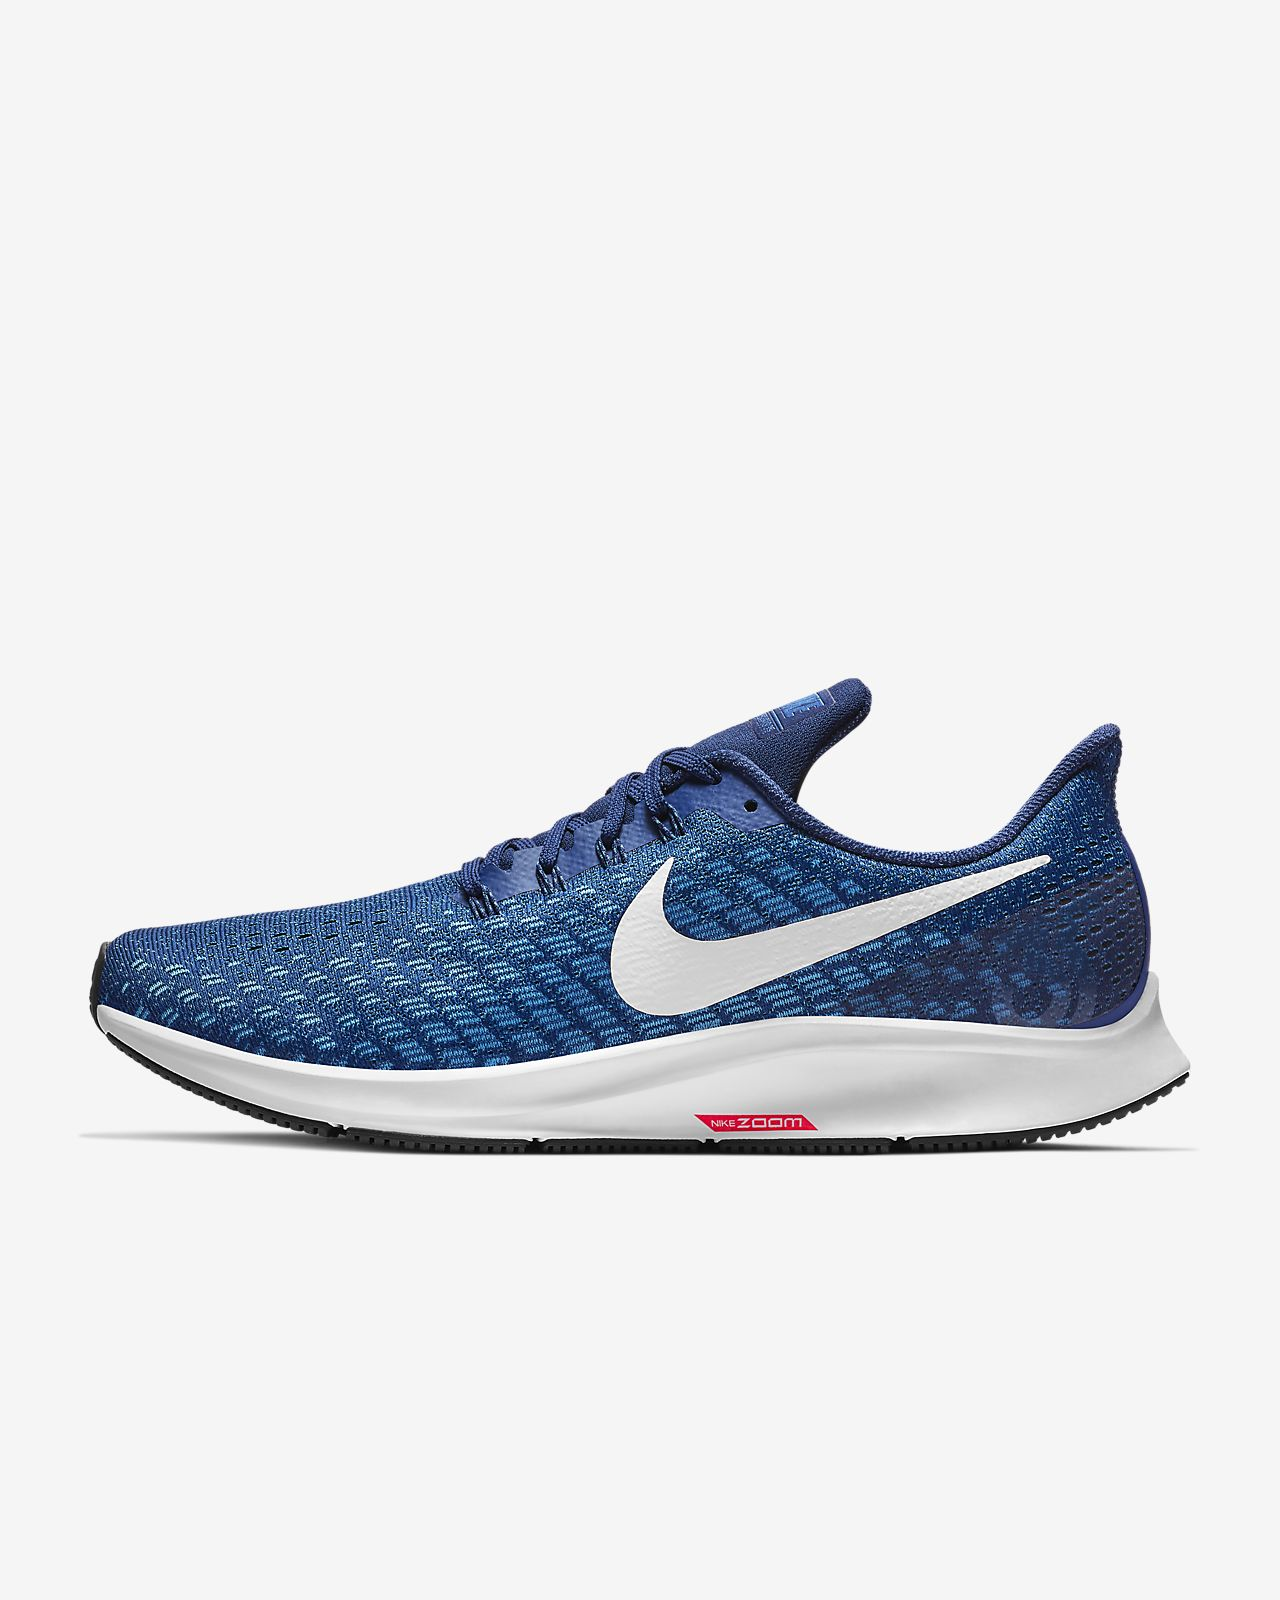 4c173bbd6ce Nike Air Zoom Pegasus 35 Men s Running Shoe. Nike.com CA